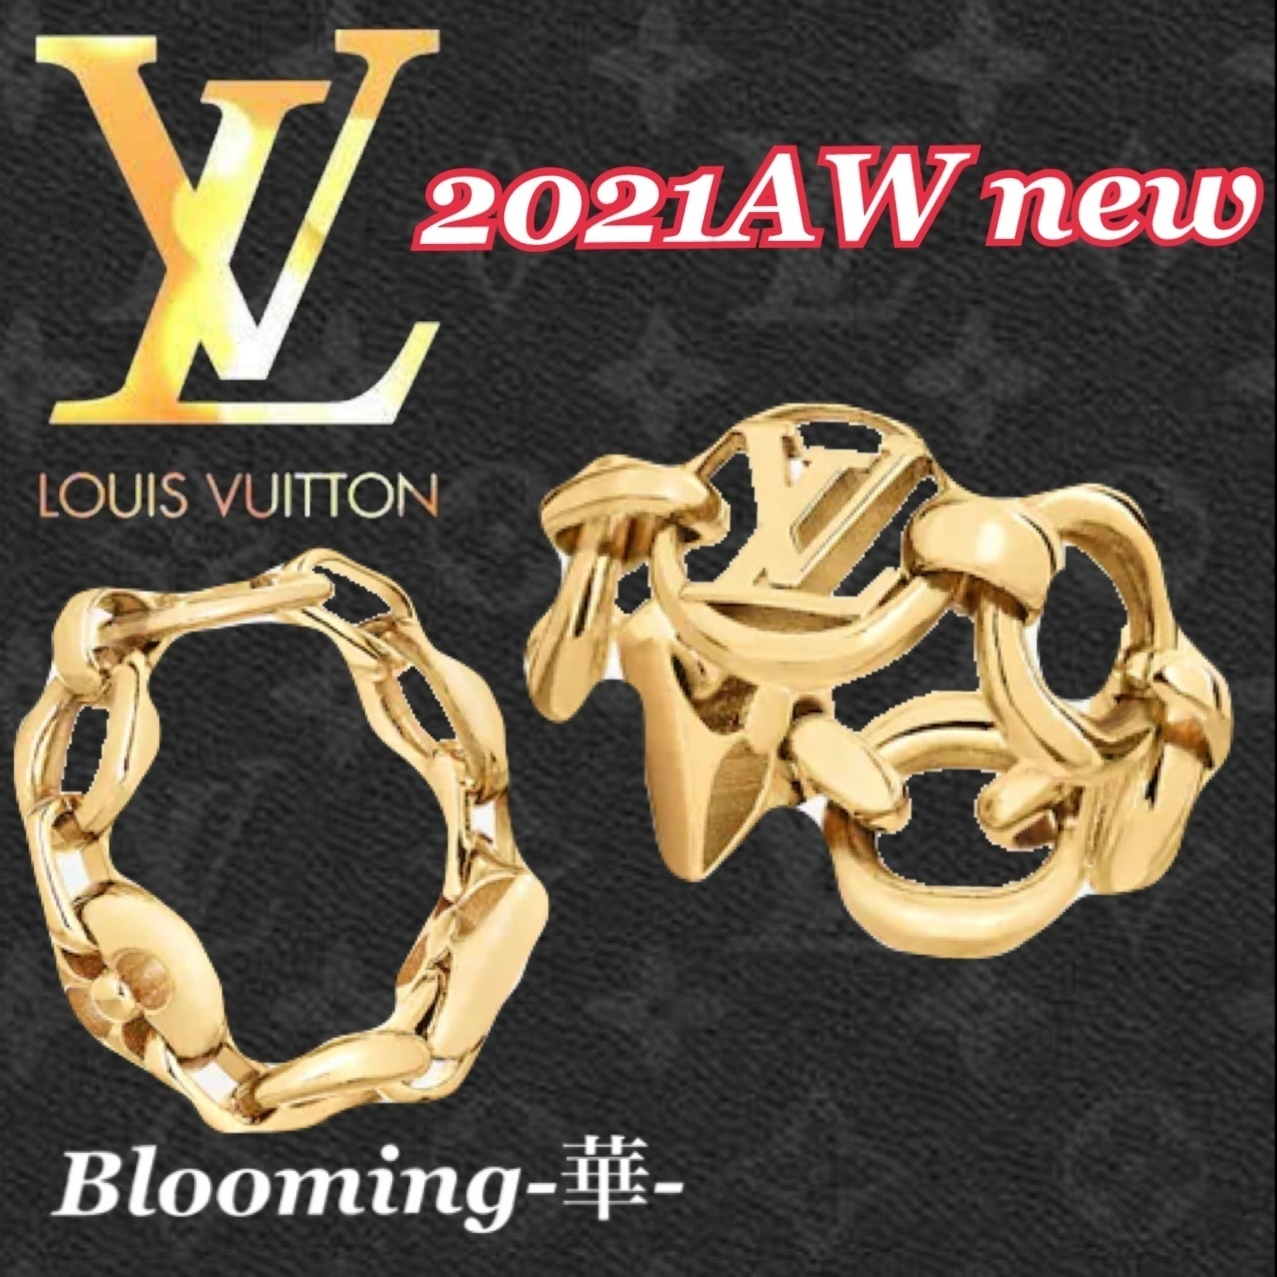 2021AW新作★直営店 ルイヴィトン クレイジーinロック リング (Louis Vuitton/指輪・リング) M00386